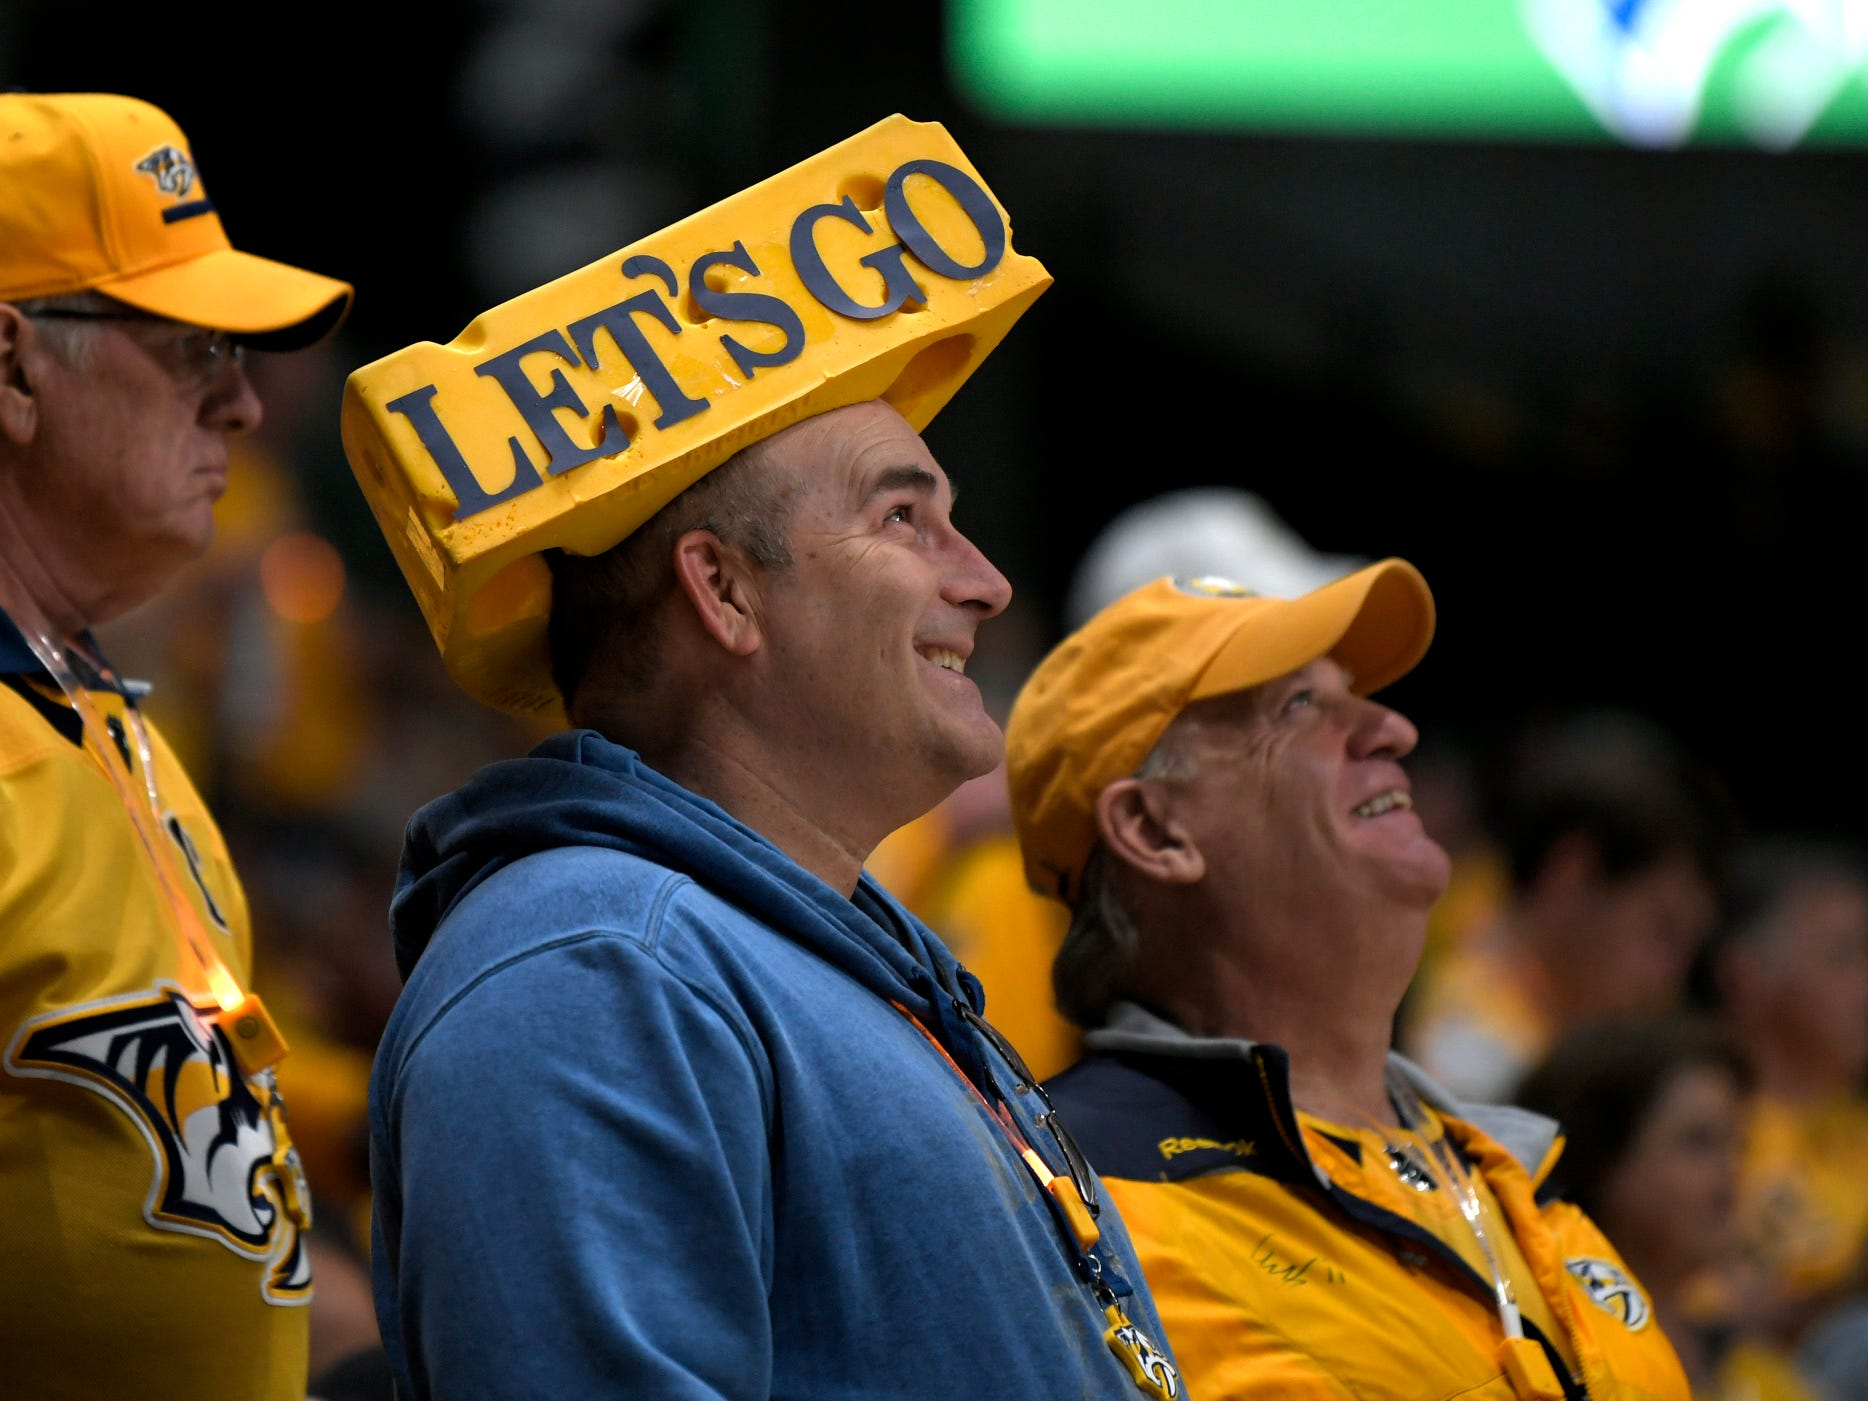 Fans watch as the Predators take the ice for the divisional semifinal Stanley Cup playoff game at Bridgestone Arena in  Nashville on Wednesday, April 10, 2019.